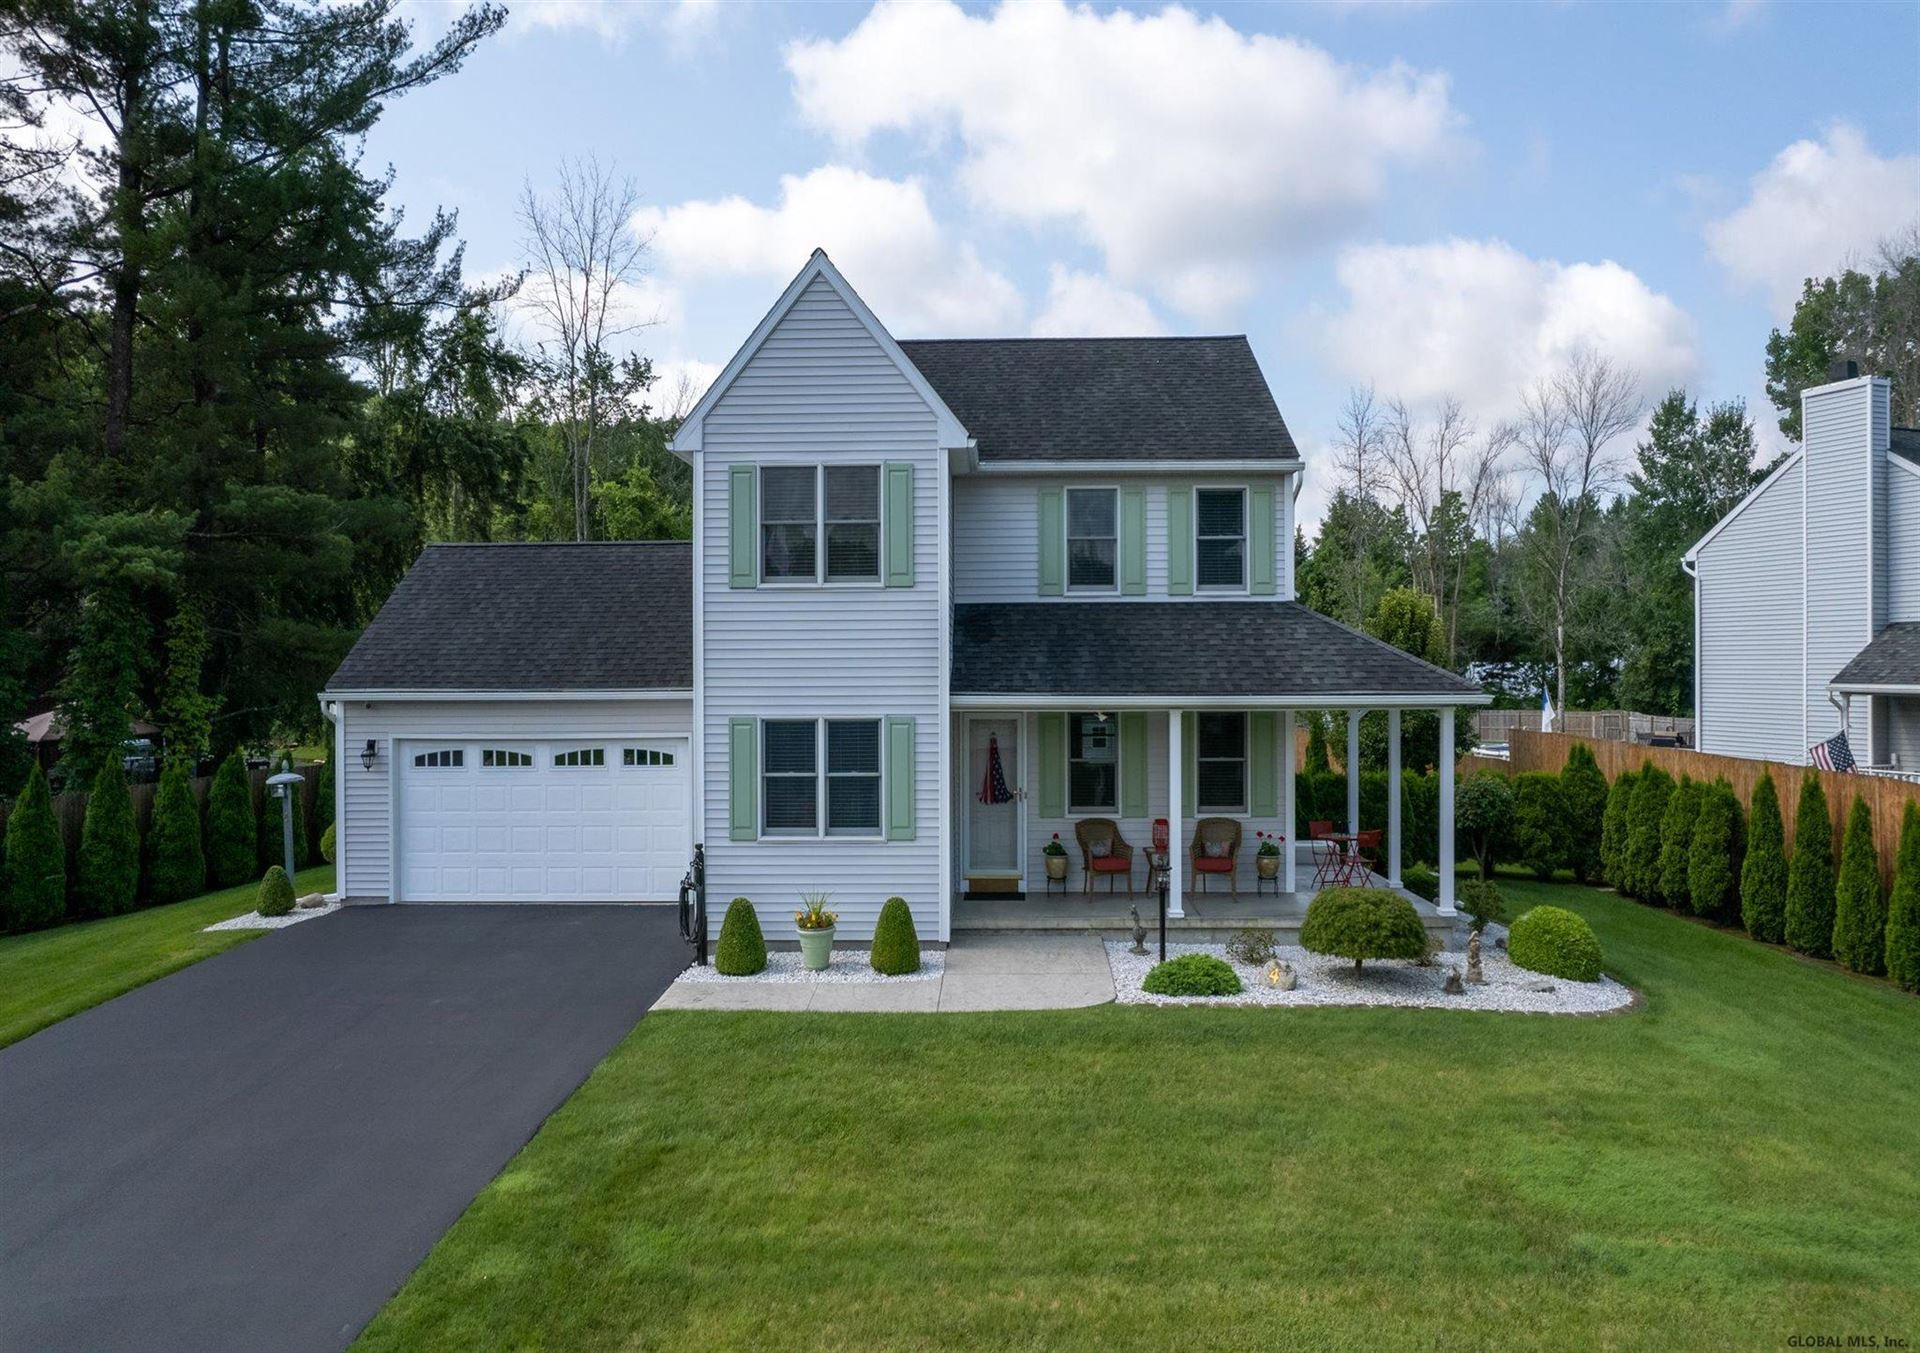 4 KINGS MILL CT, Colonie, NY 12205 - #: 202128493